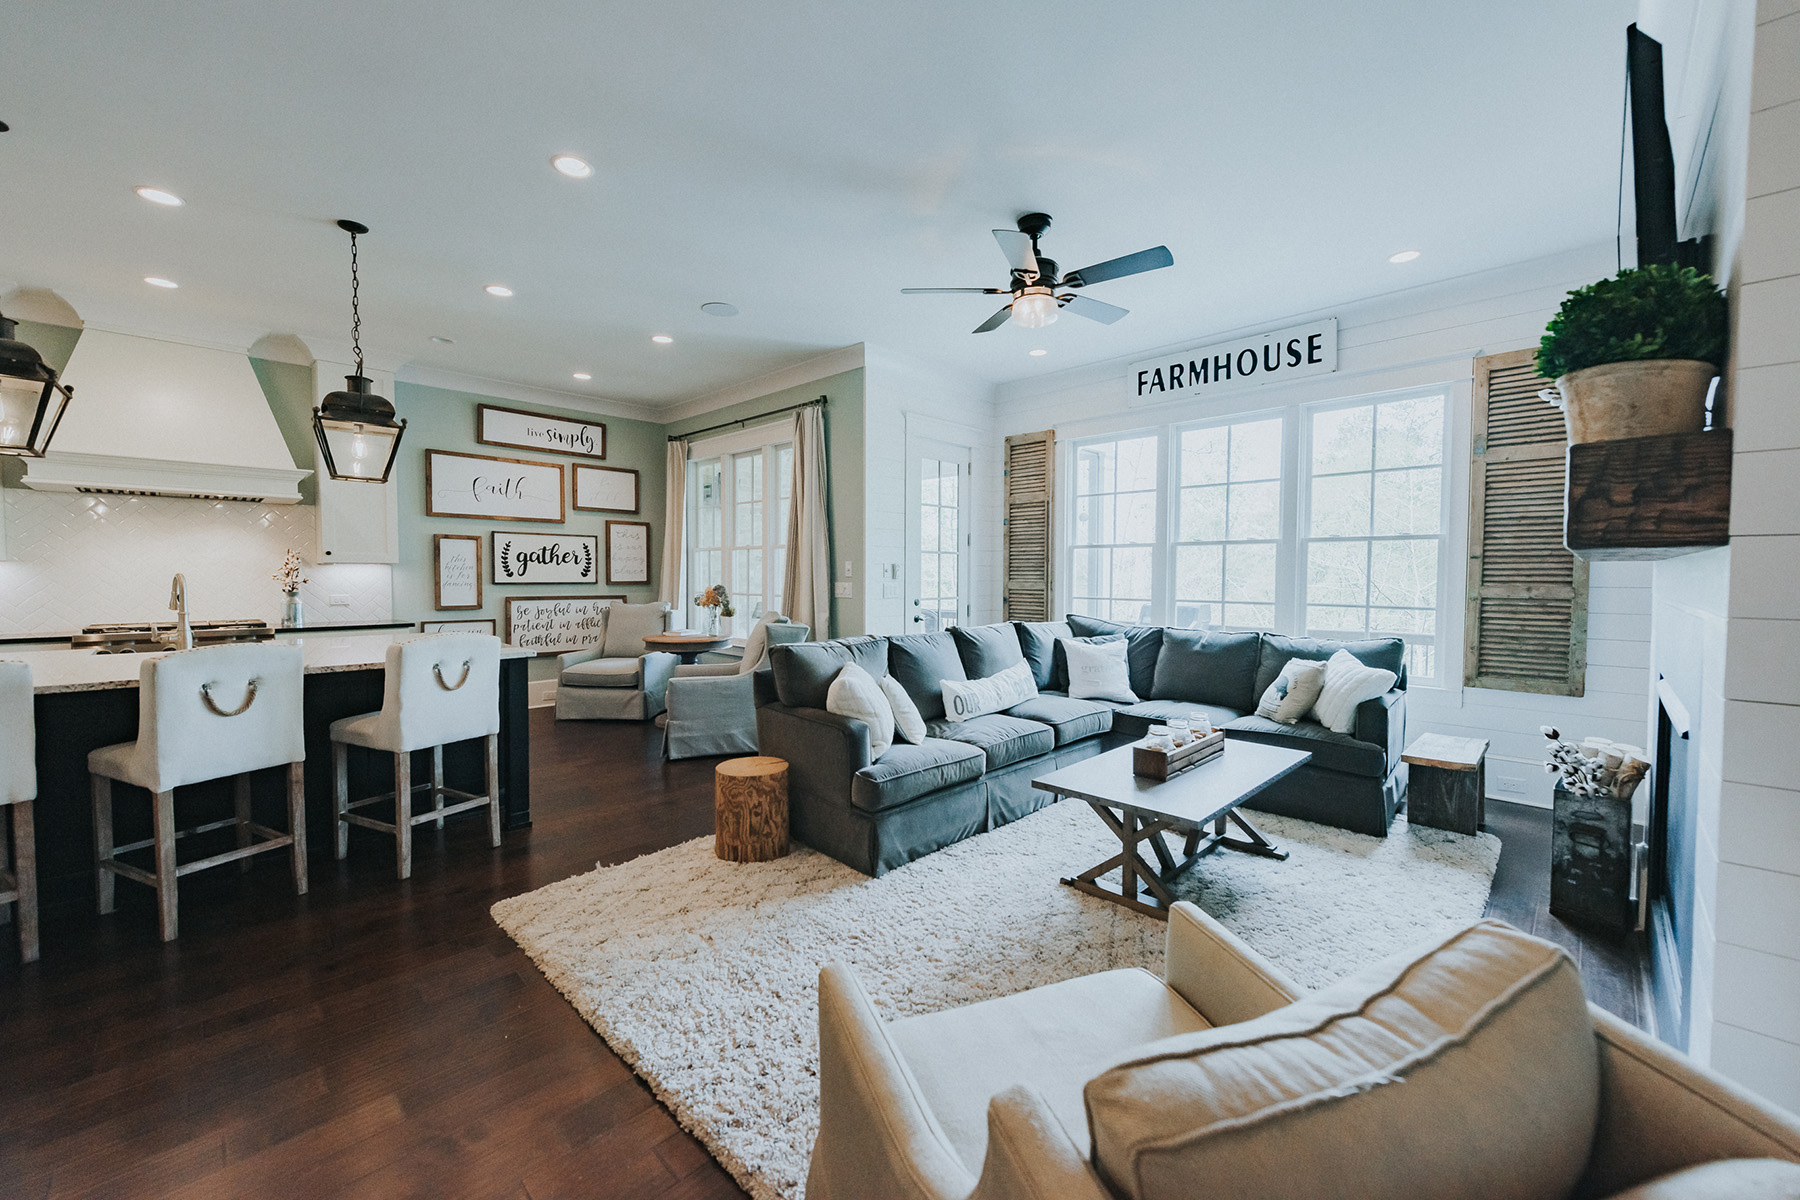 townhouses por un Venta en Location and Perfection in Historical Downtown Roswell 305 Windy Pines Trail, Roswell, Georgia 30075 Estados Unidos